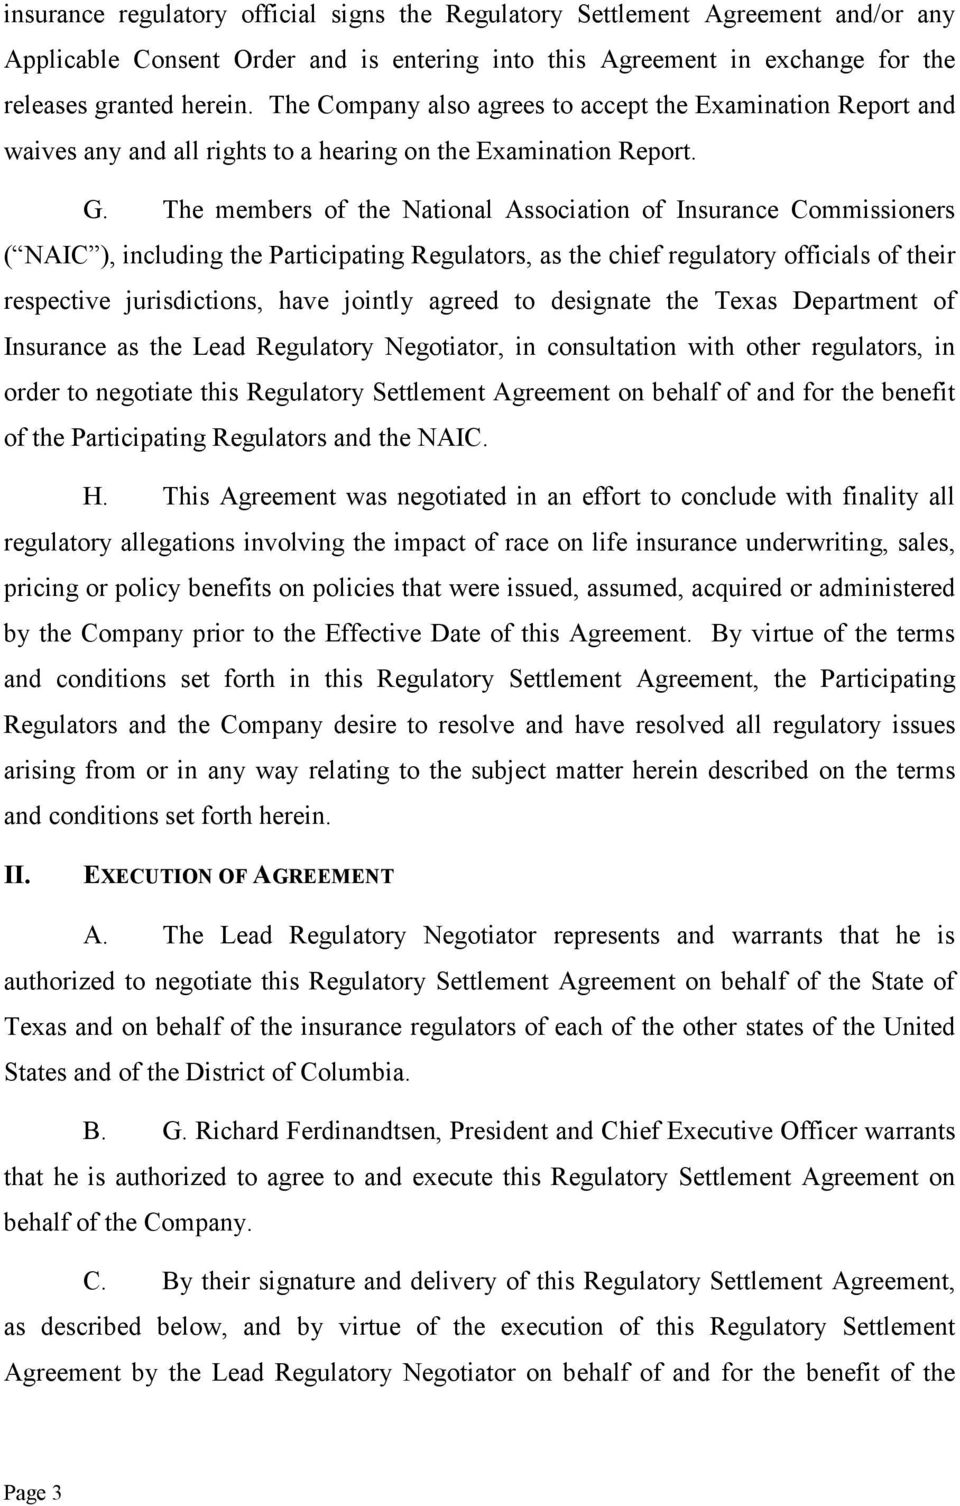 The members of the National Association of Insurance Commissioners ( NAIC ), including the Participating Regulators, as the chief regulatory officials of their respective jurisdictions, have jointly